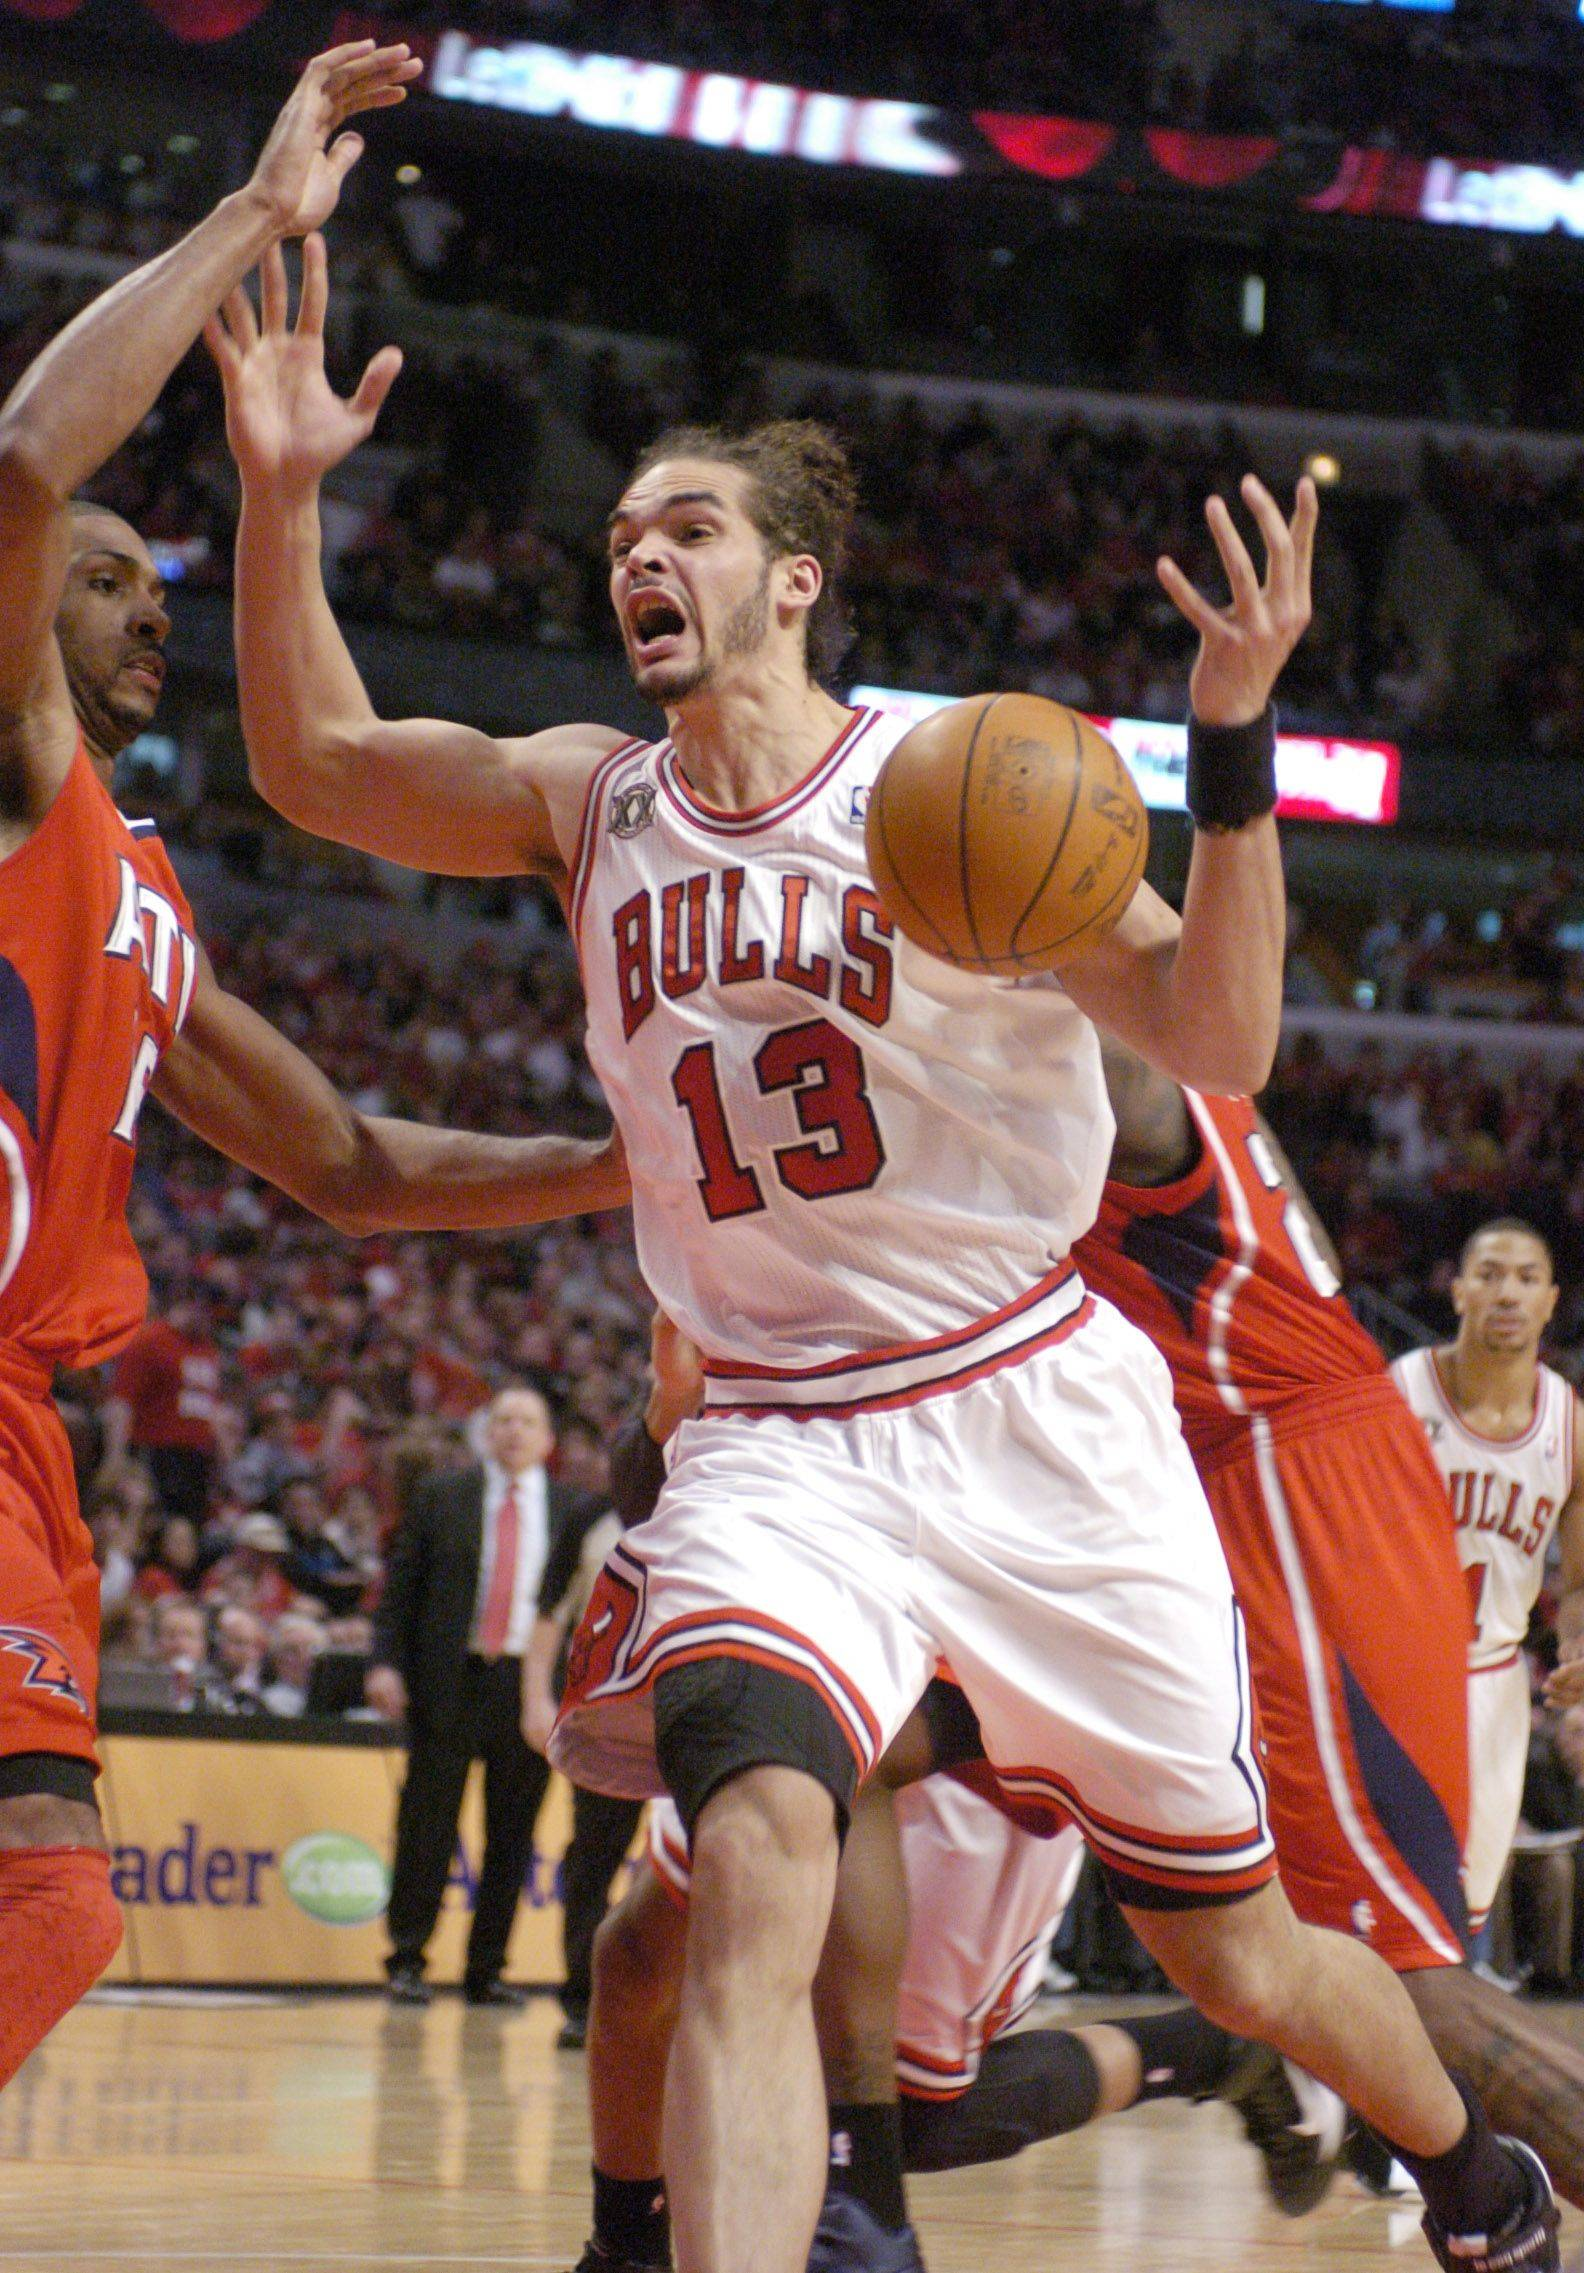 Joakim Noah looks for a foul call after having the ball slapped away during Wednesday's game against the Hawks.